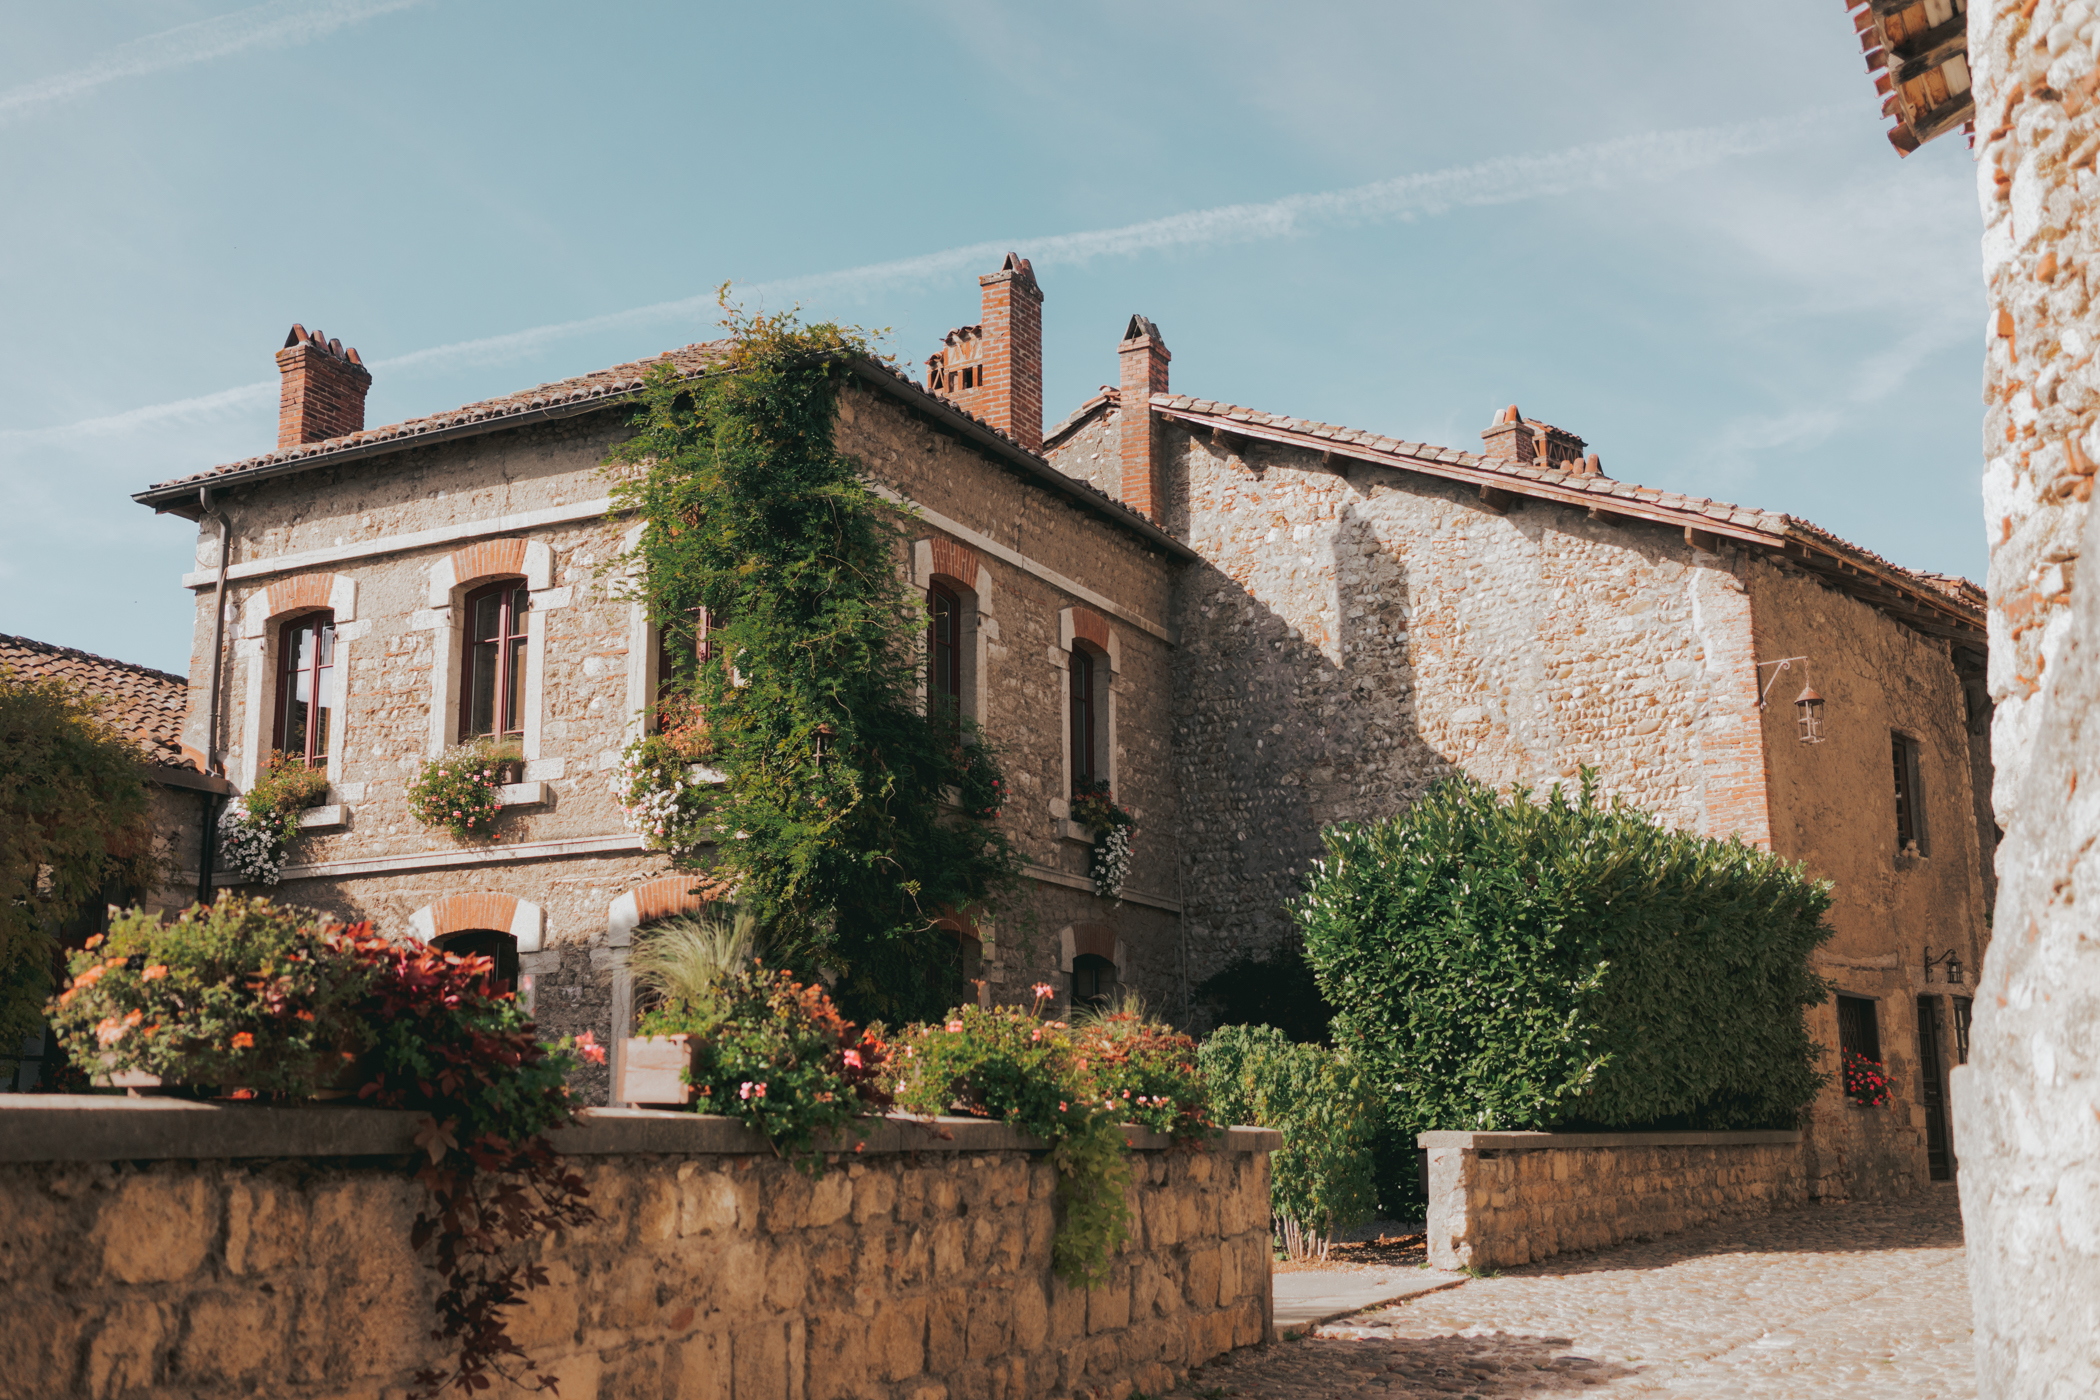 Day trip to Perouges from Lyon - French Medieval Town